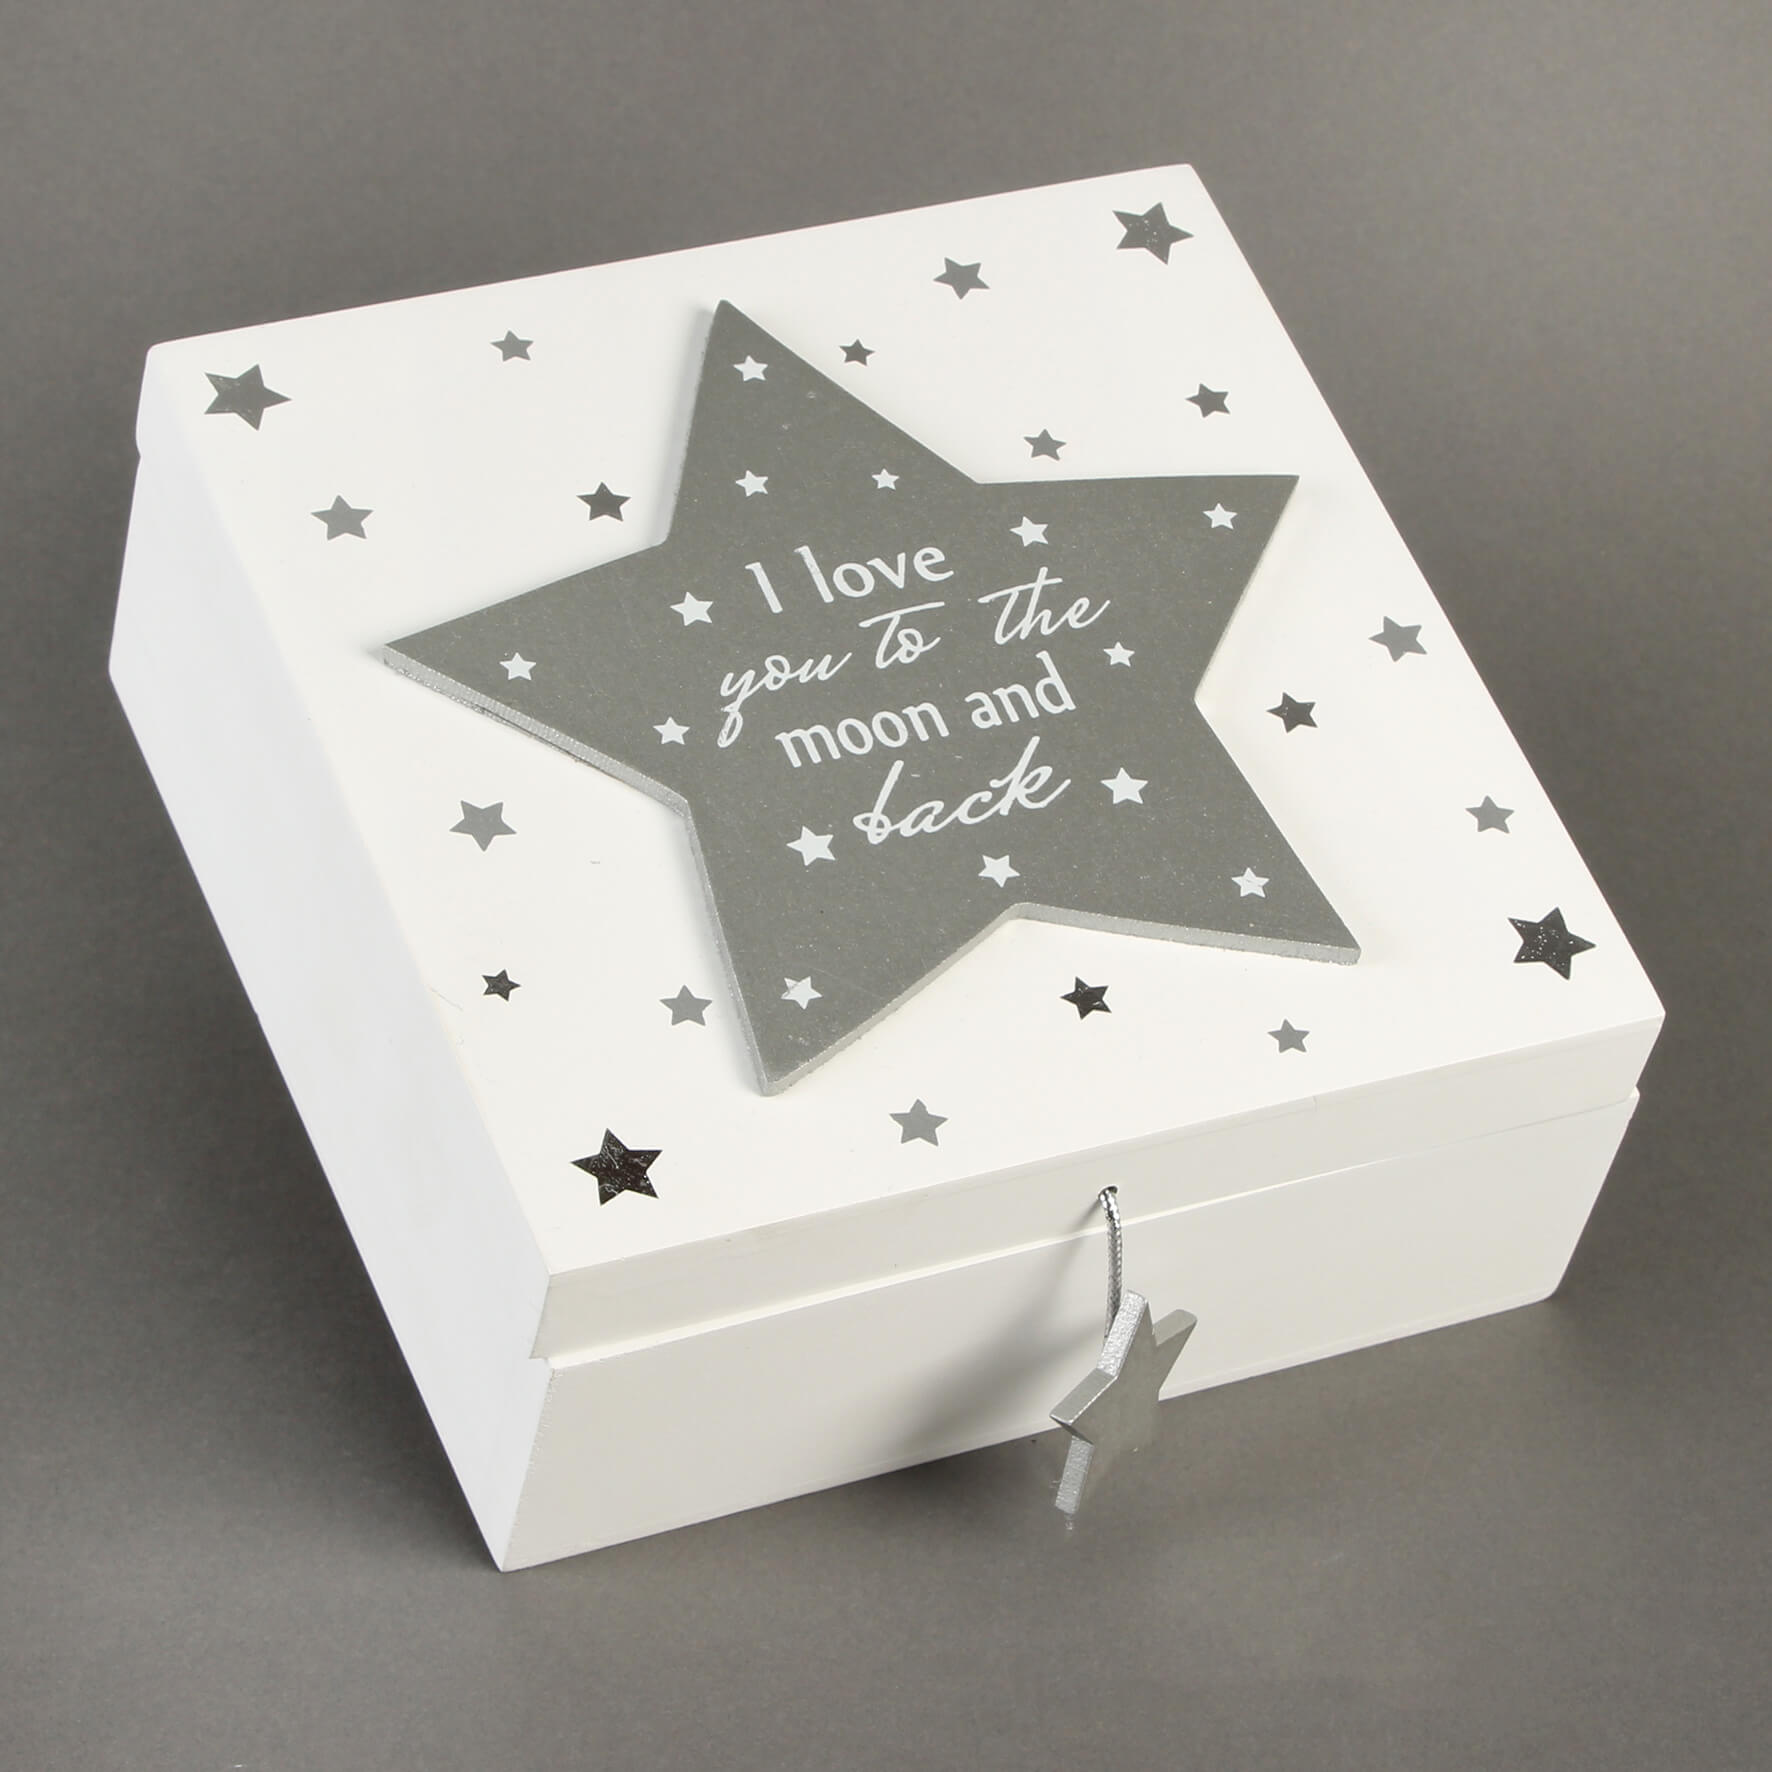 Twinkle Twinkle - Cutie pastrare amintiri din MDF